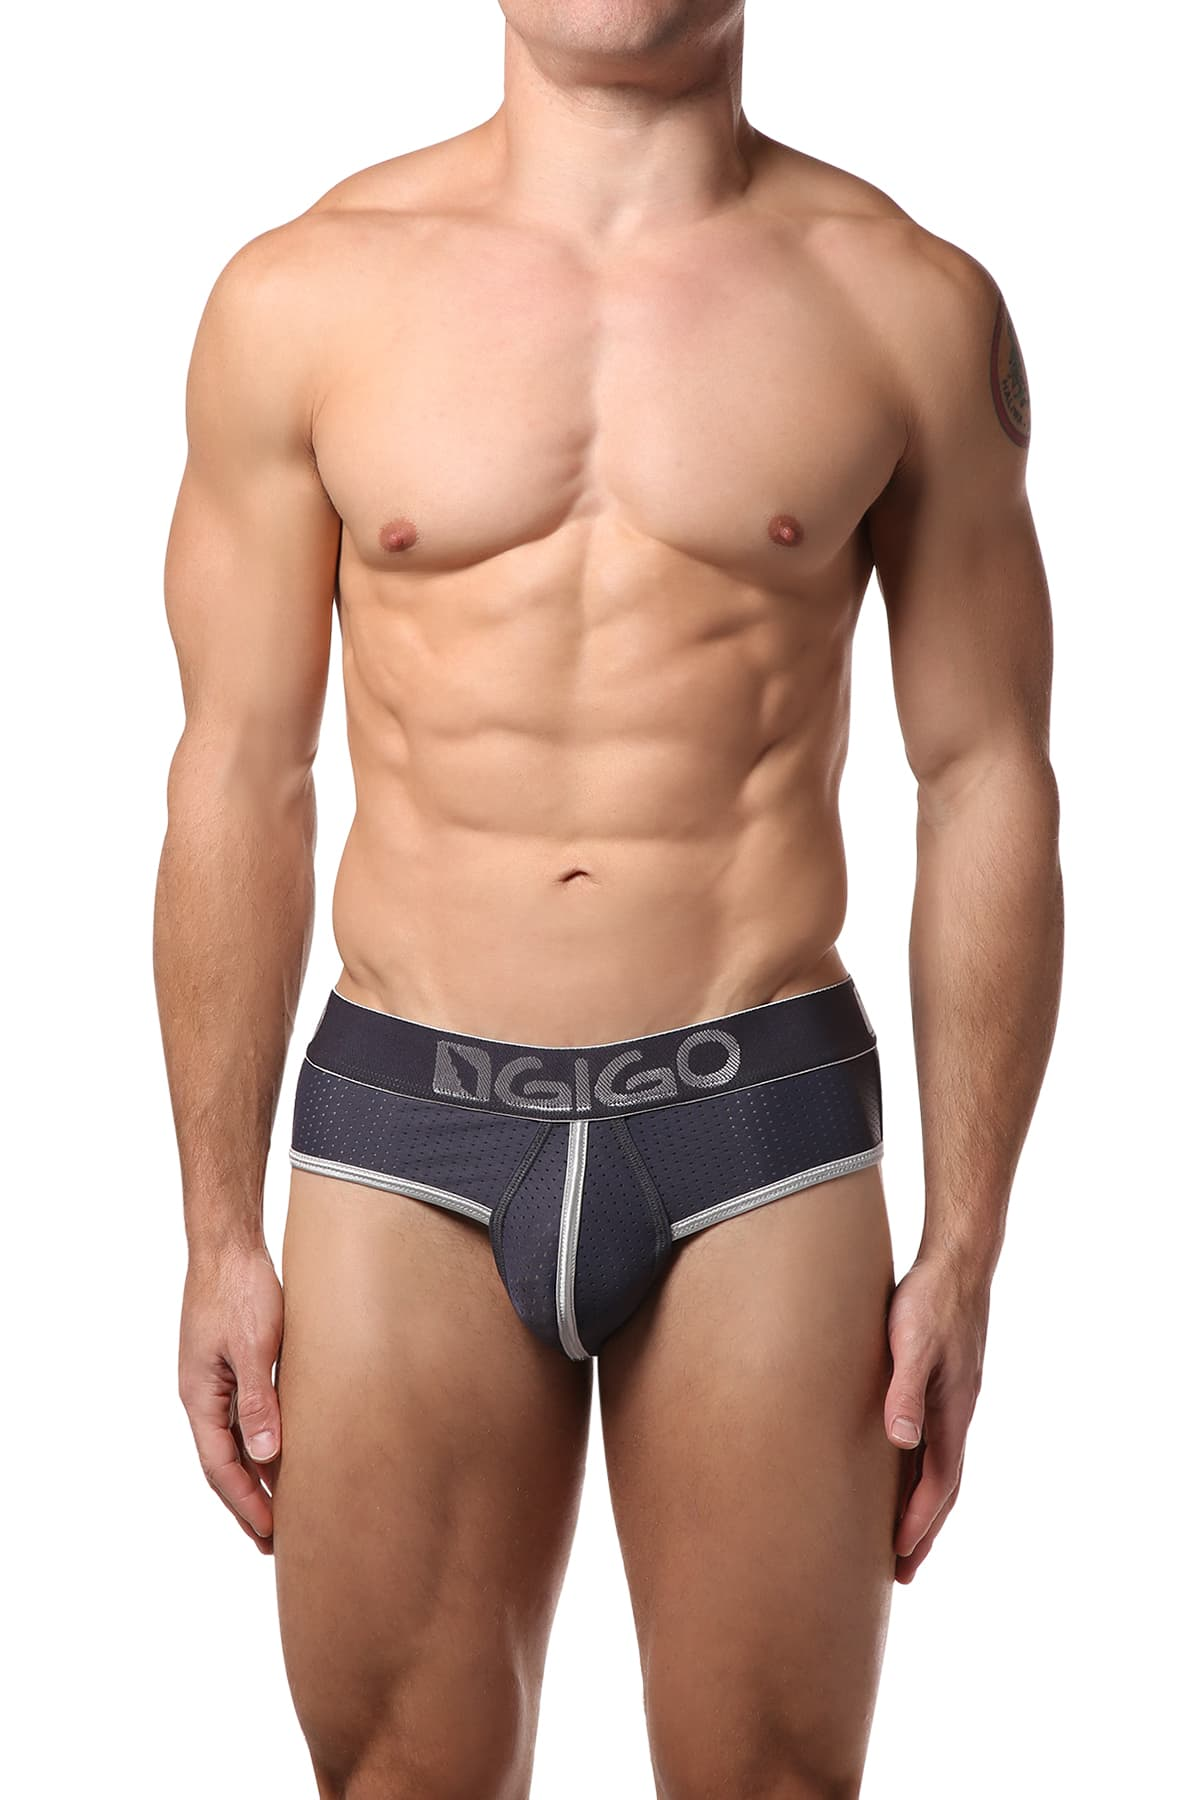 Gigo Grey Hollow Jock Brief